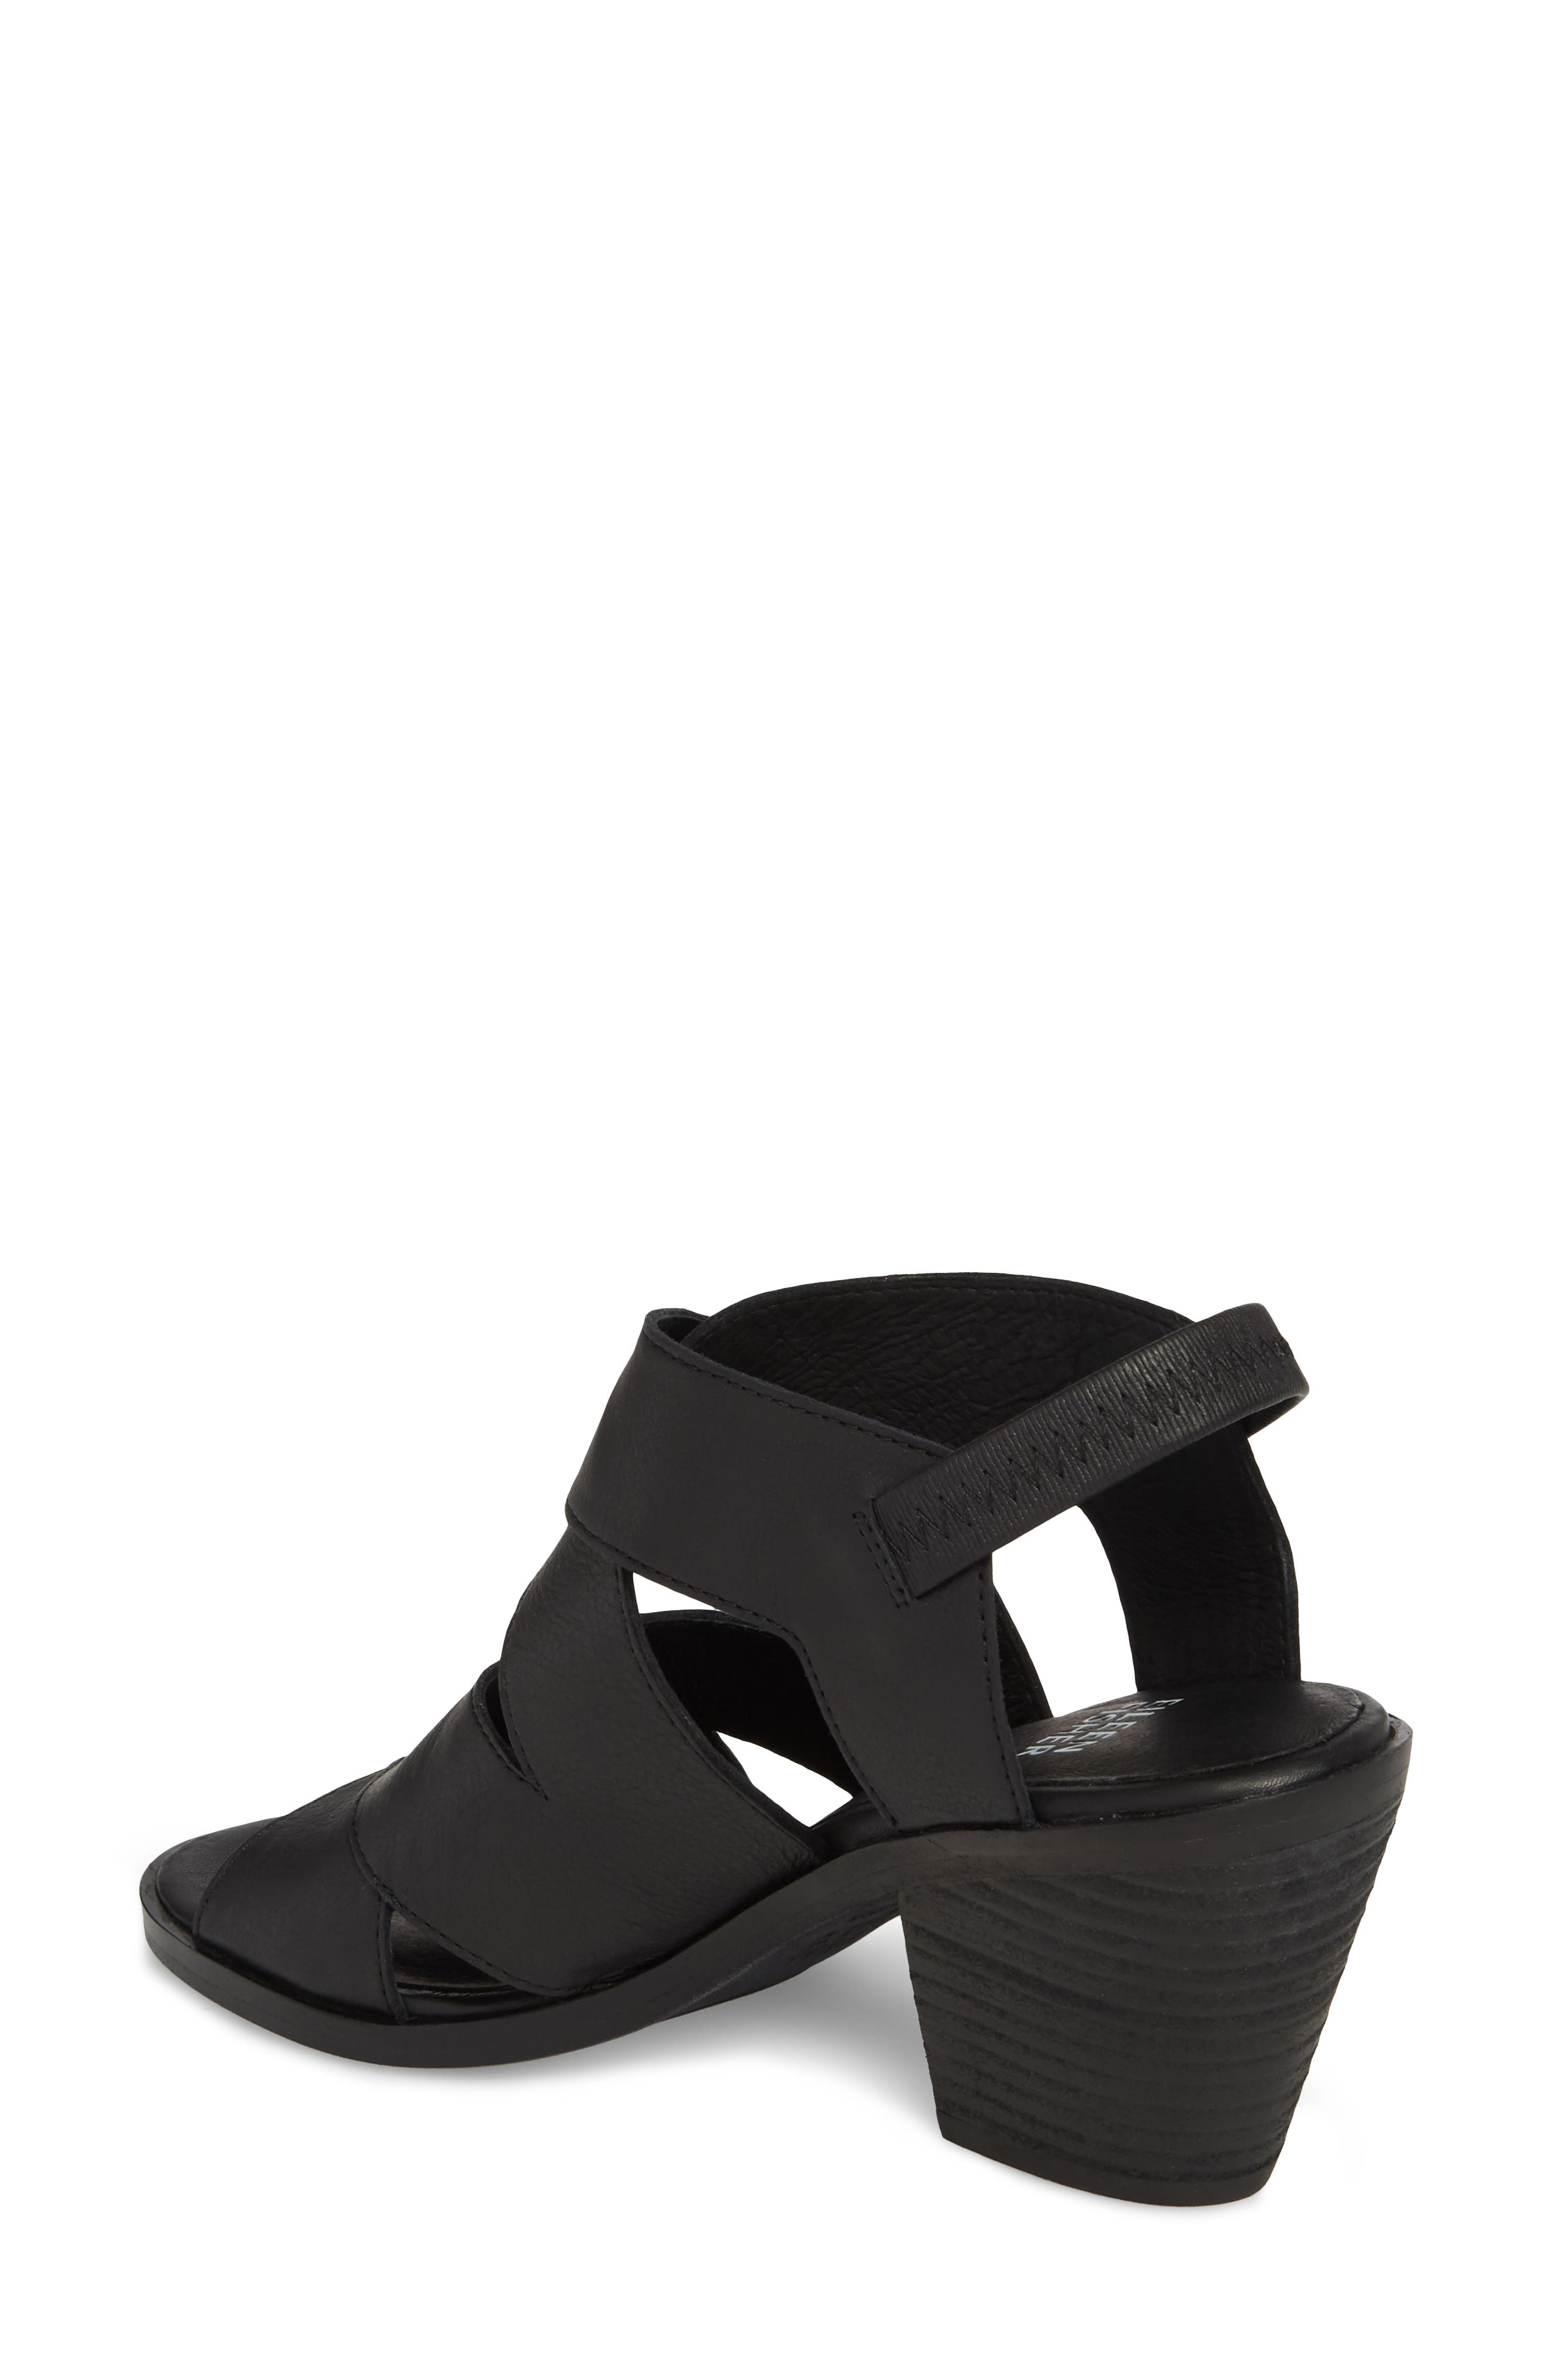 Rai Sandal,                             Alternate thumbnail 2, color,                             Black Leather